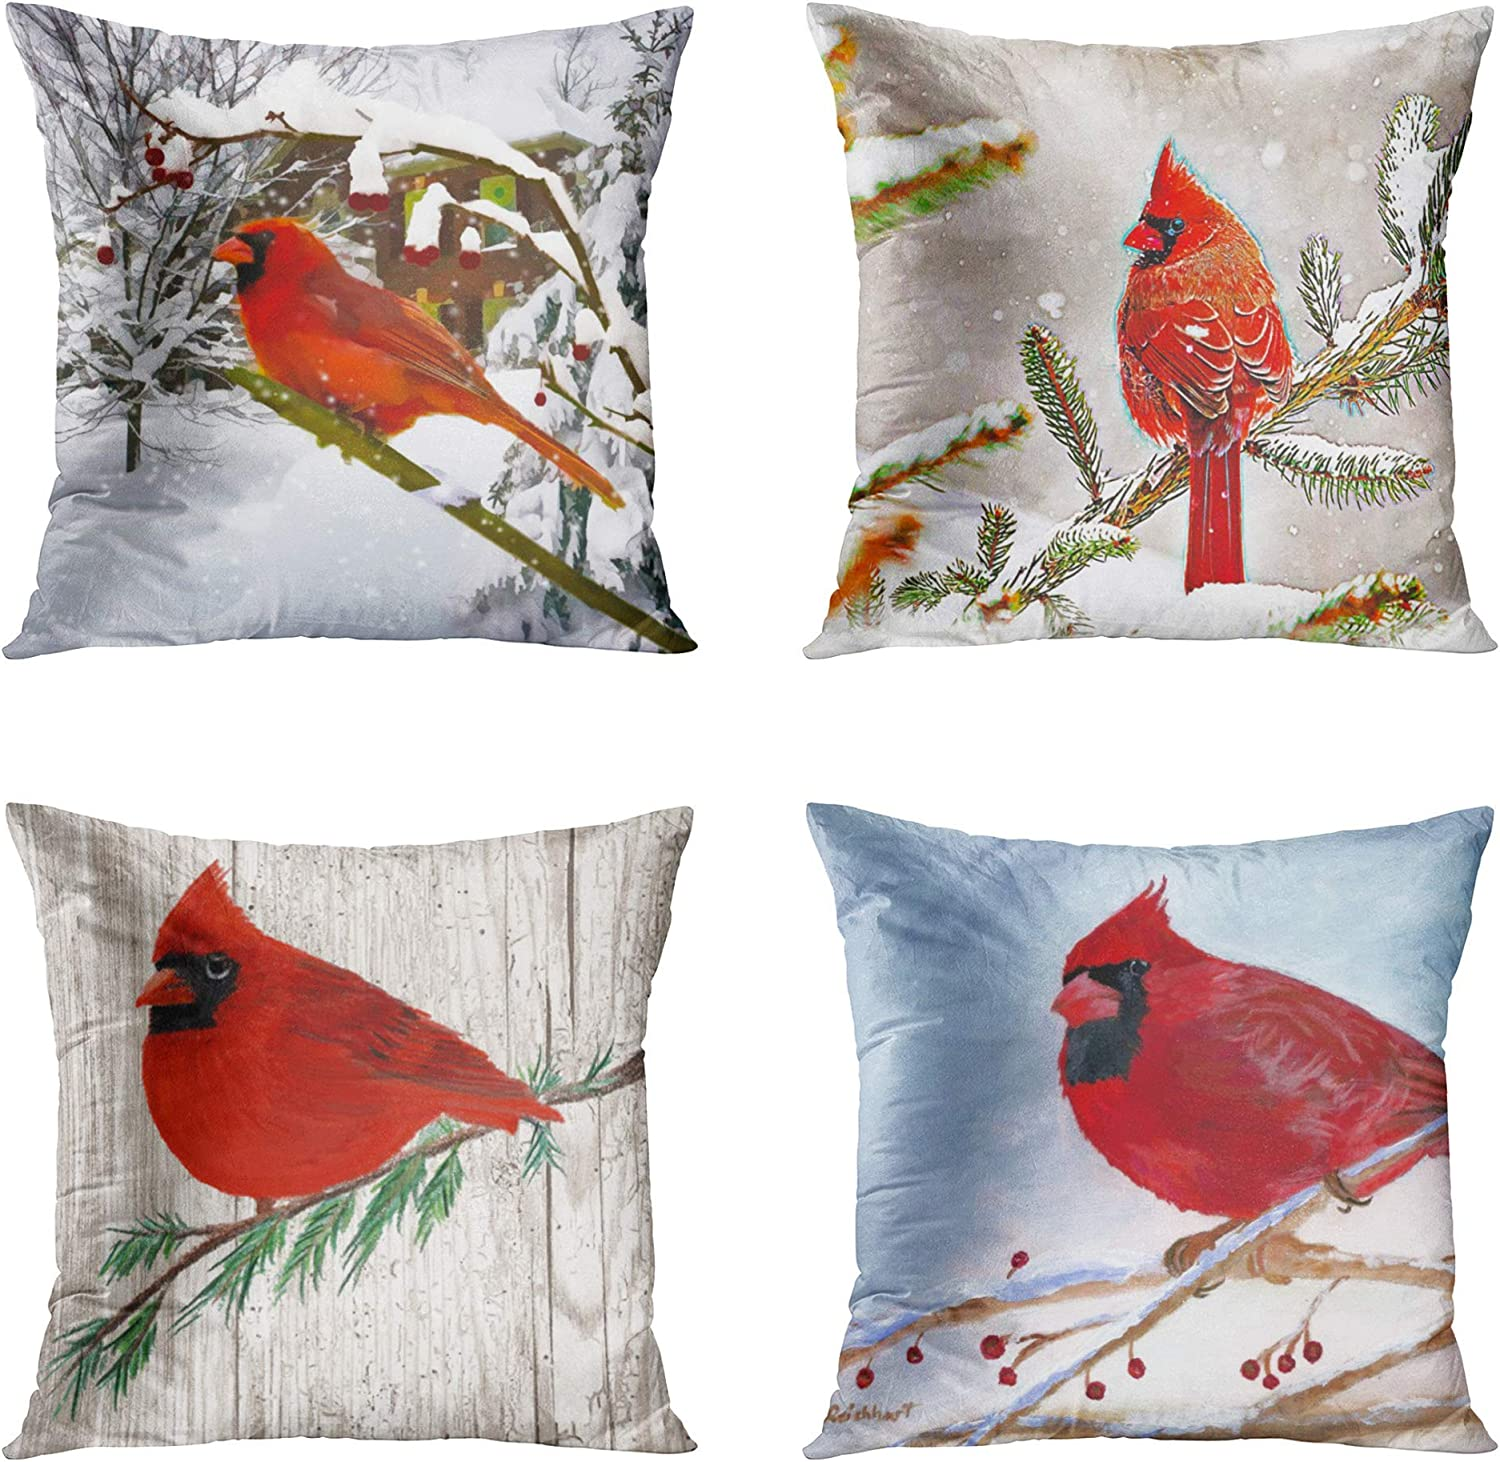 Amazon Com Accrocn Set Of 4 Throw Pillow Covers 16x16 Inch Red Snowflakes Cardinal Bird Snow Winter Animals Nature Wildlife Home Decor Cushion Covers Square Pillowcases For Sofa Couch Home Kitchen